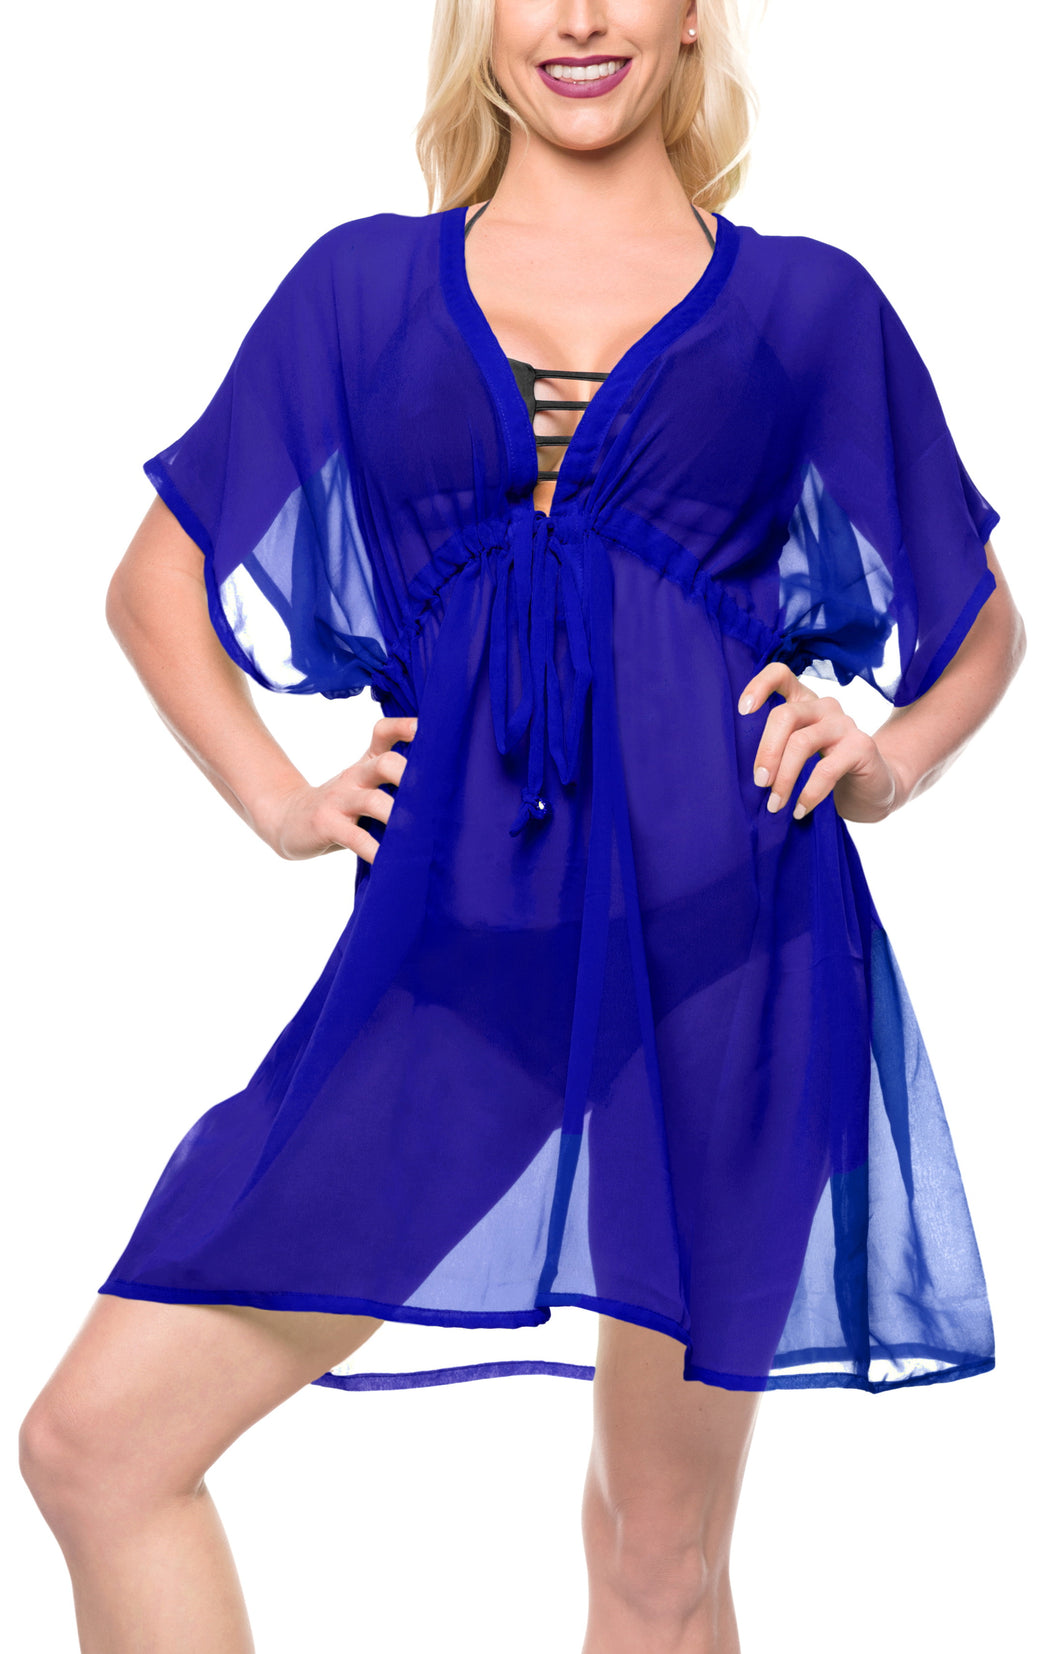 LA LEELA Bikni Swimwear Chiffon Solid Swimsuit Cover Up OSFM 14-24 [L-3X] Royal Blue_926